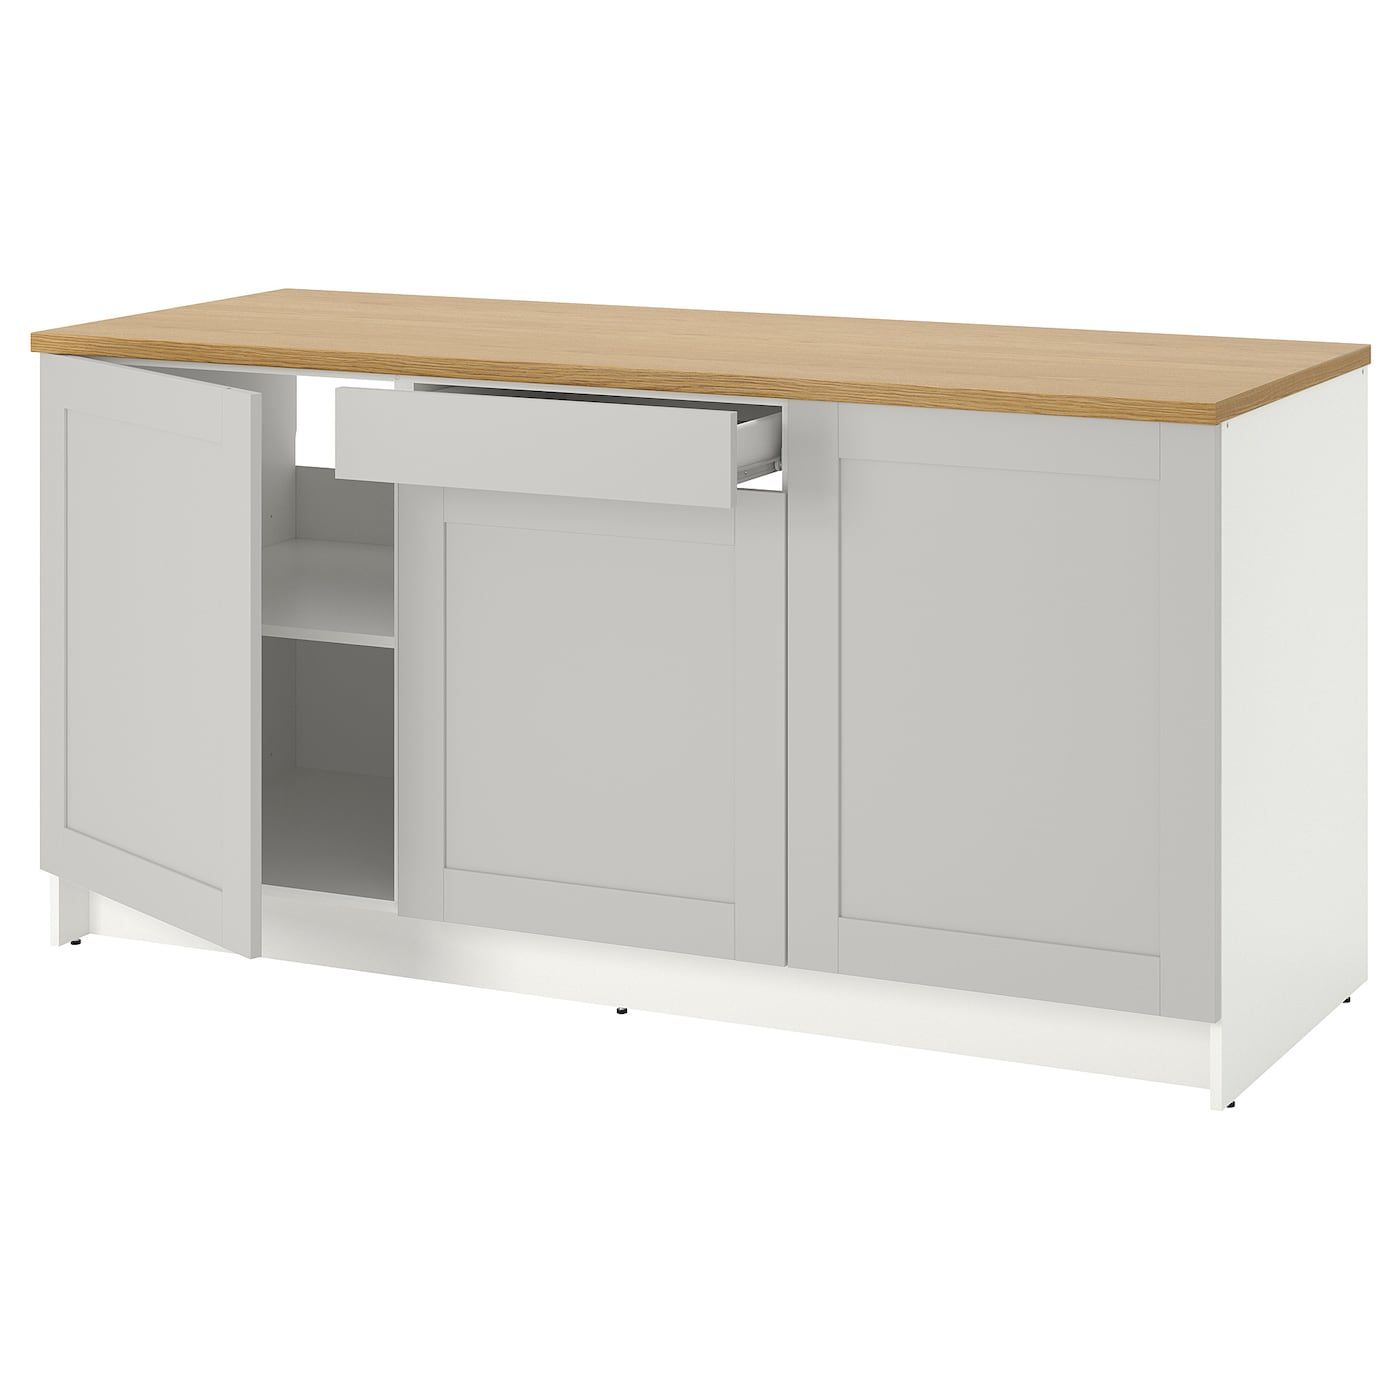 Knoxhult Base Cabinet With Doors And Drawer Gray Countertop Length 72 3 8 Ikea In 2020 Cabinet Doors Base Cabinets Countertops